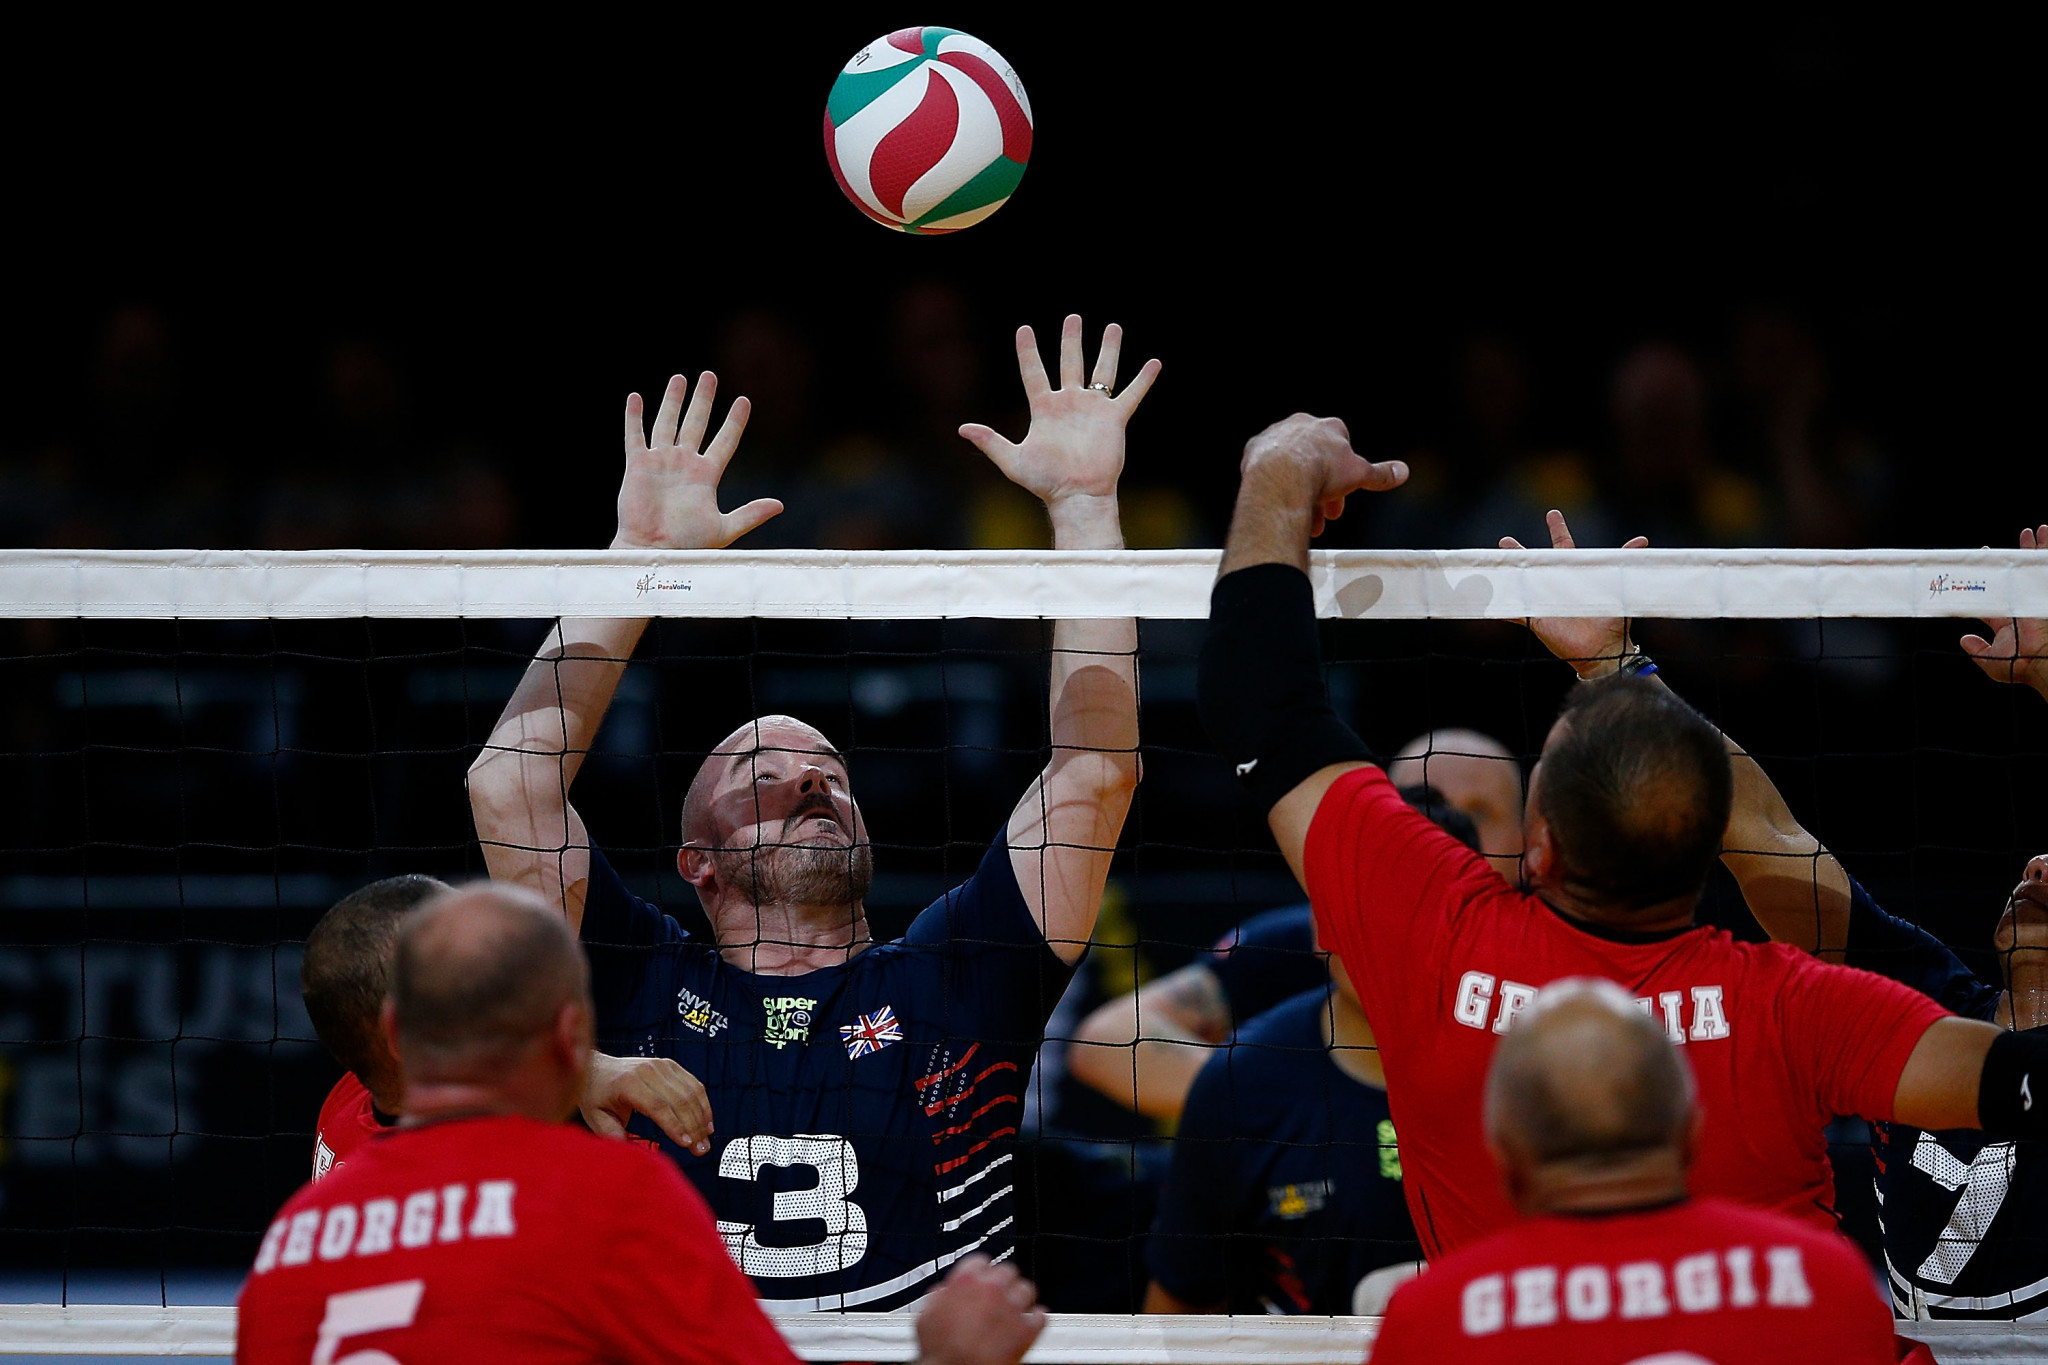 Georgia beat the United Kingdom 21-14, 21-12 in the final of the sitting volleyball event at the 2018 Sydney Invictus Games ©Getty Images